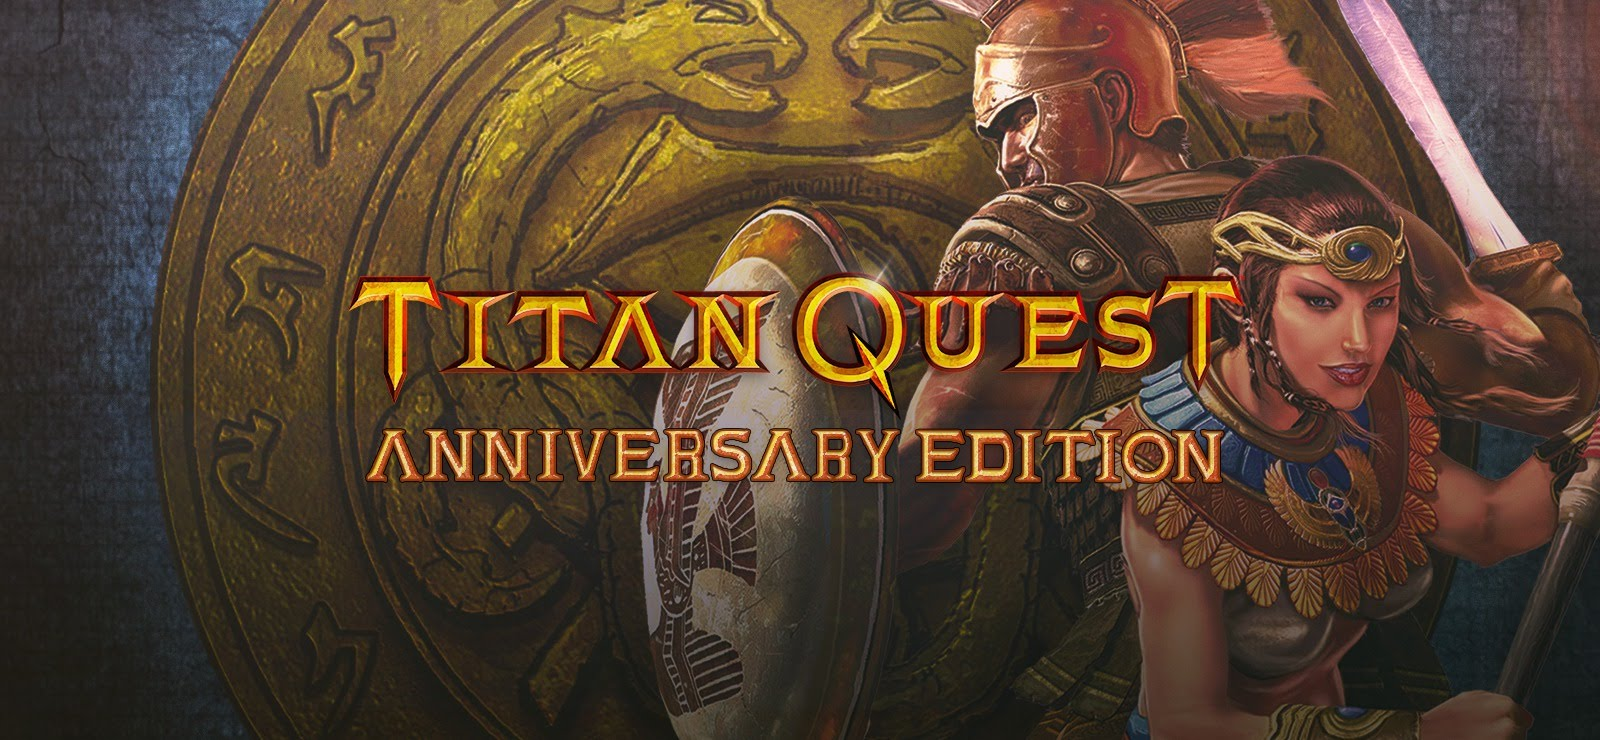 titan-quest-anniversary-edition-atlantis